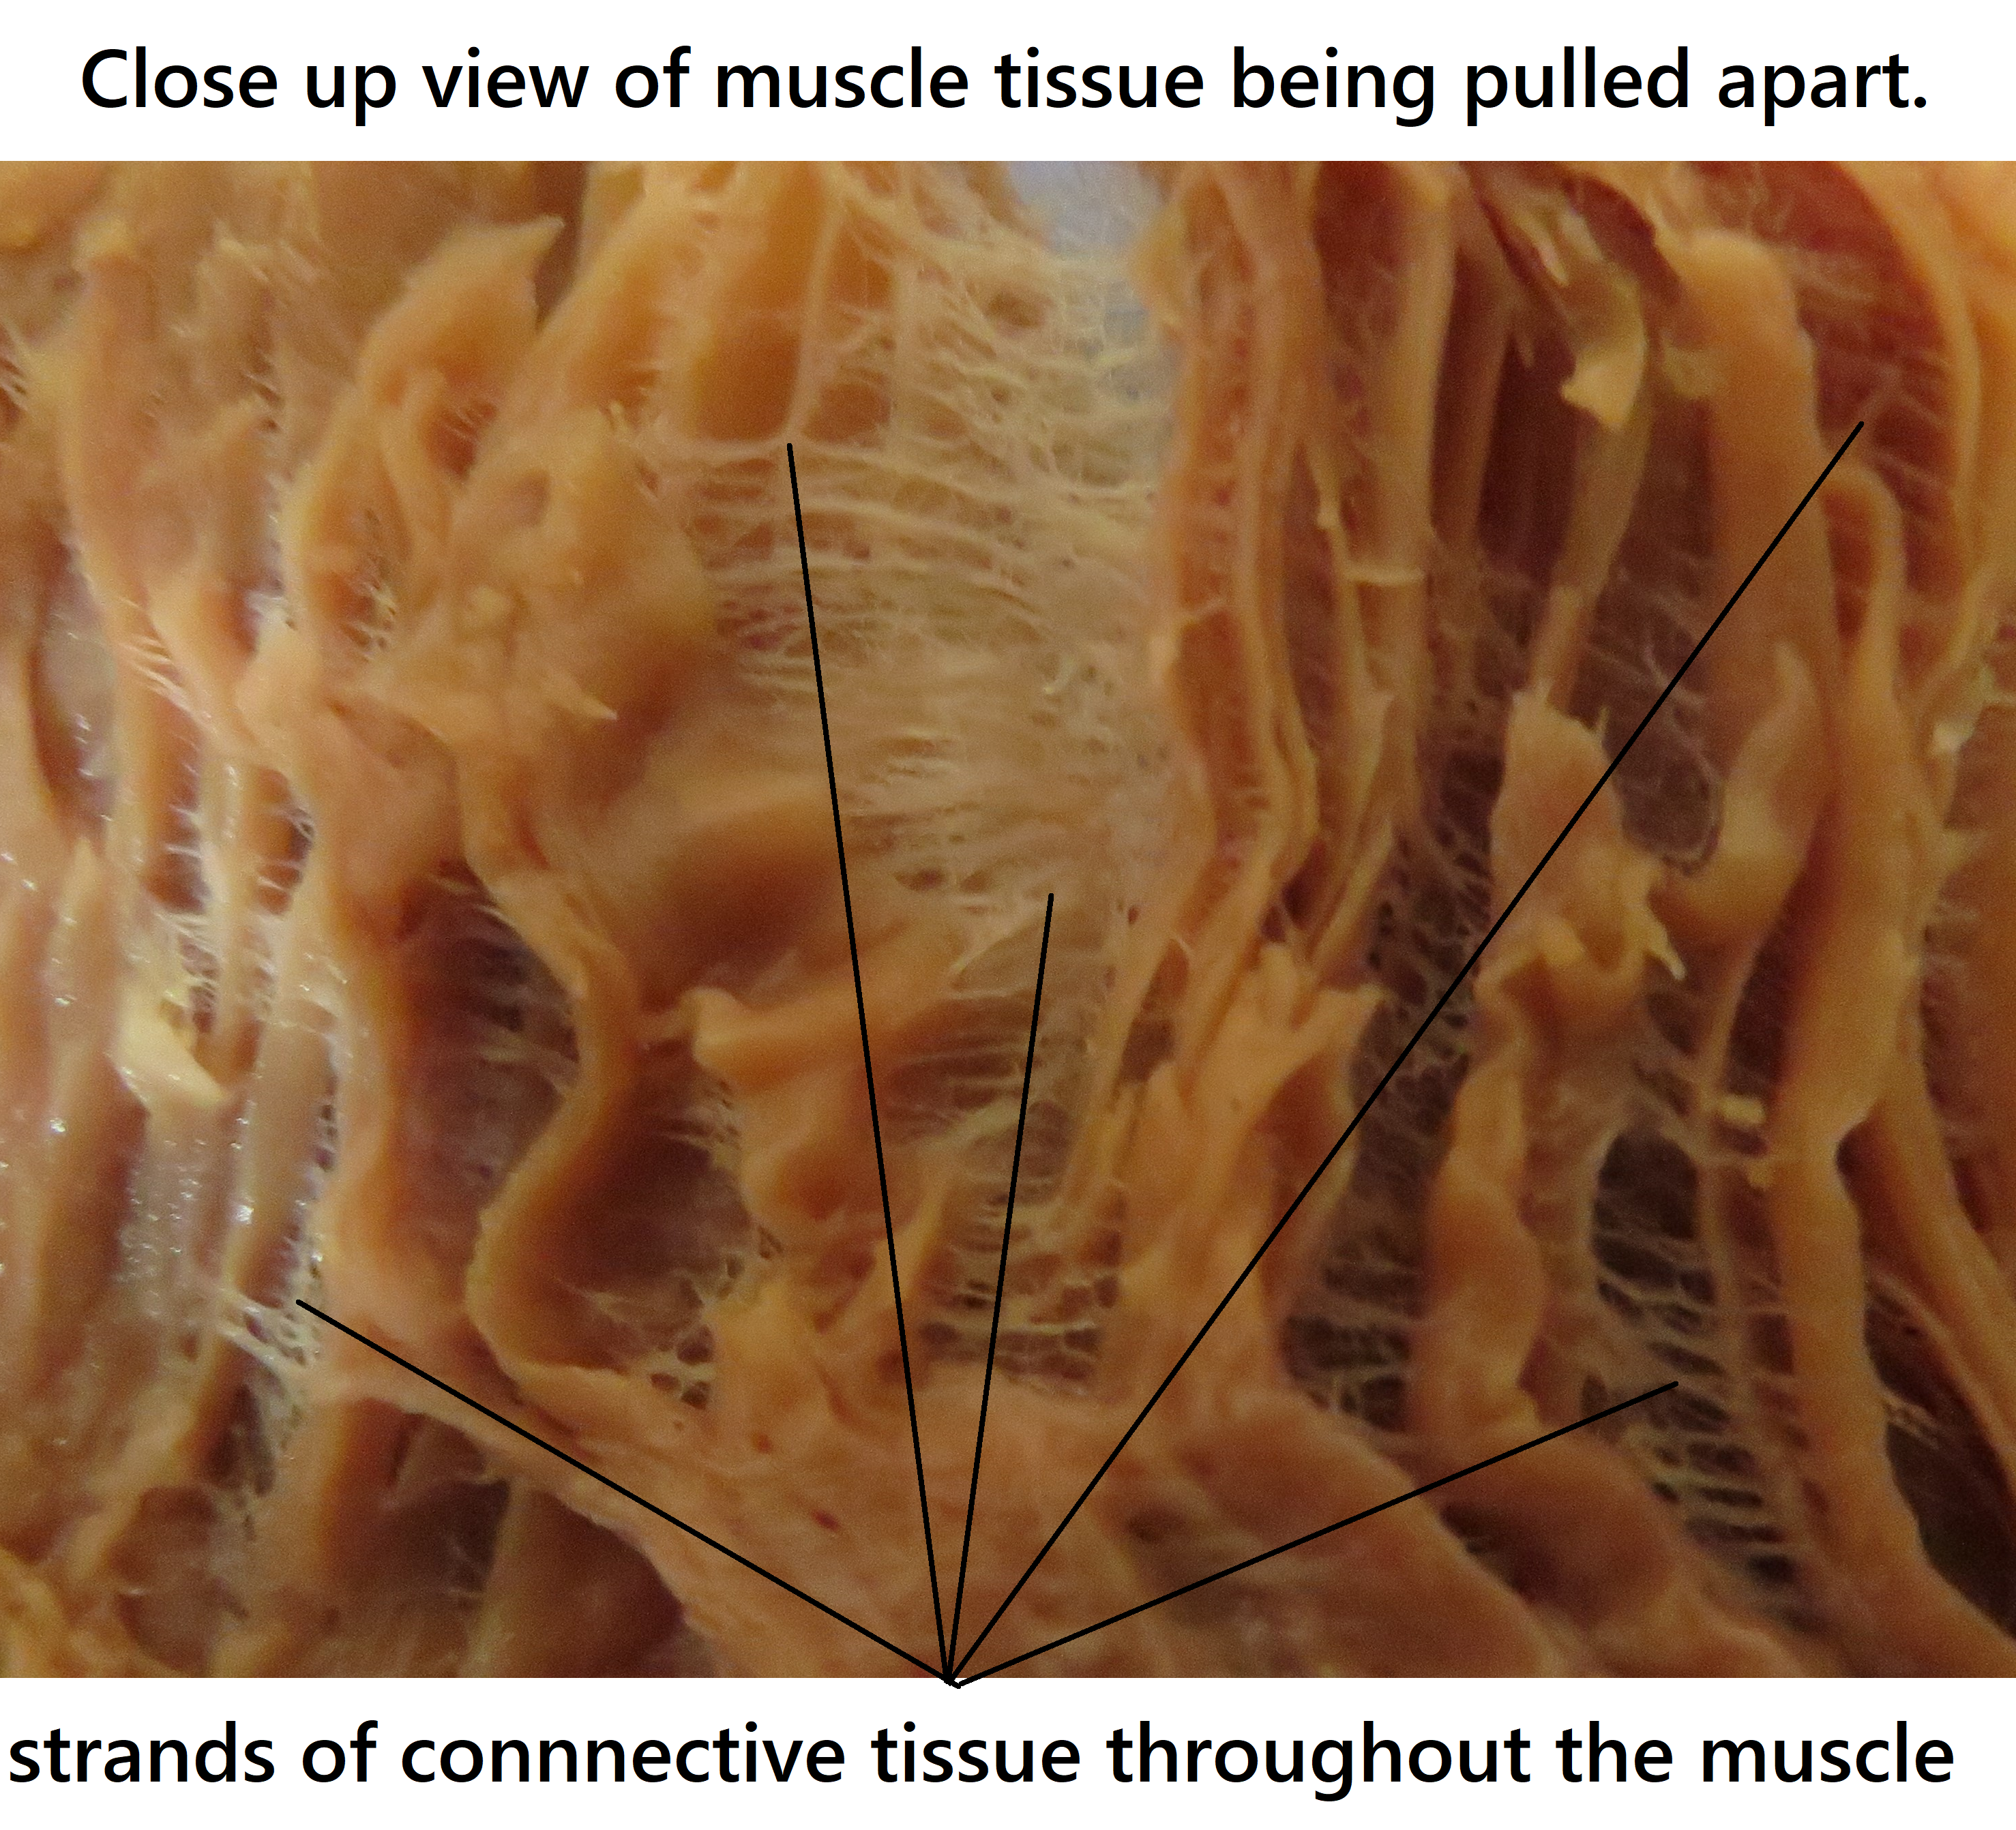 muscle tissue pulled apart showing the strands of connective tissue that are throughout it.